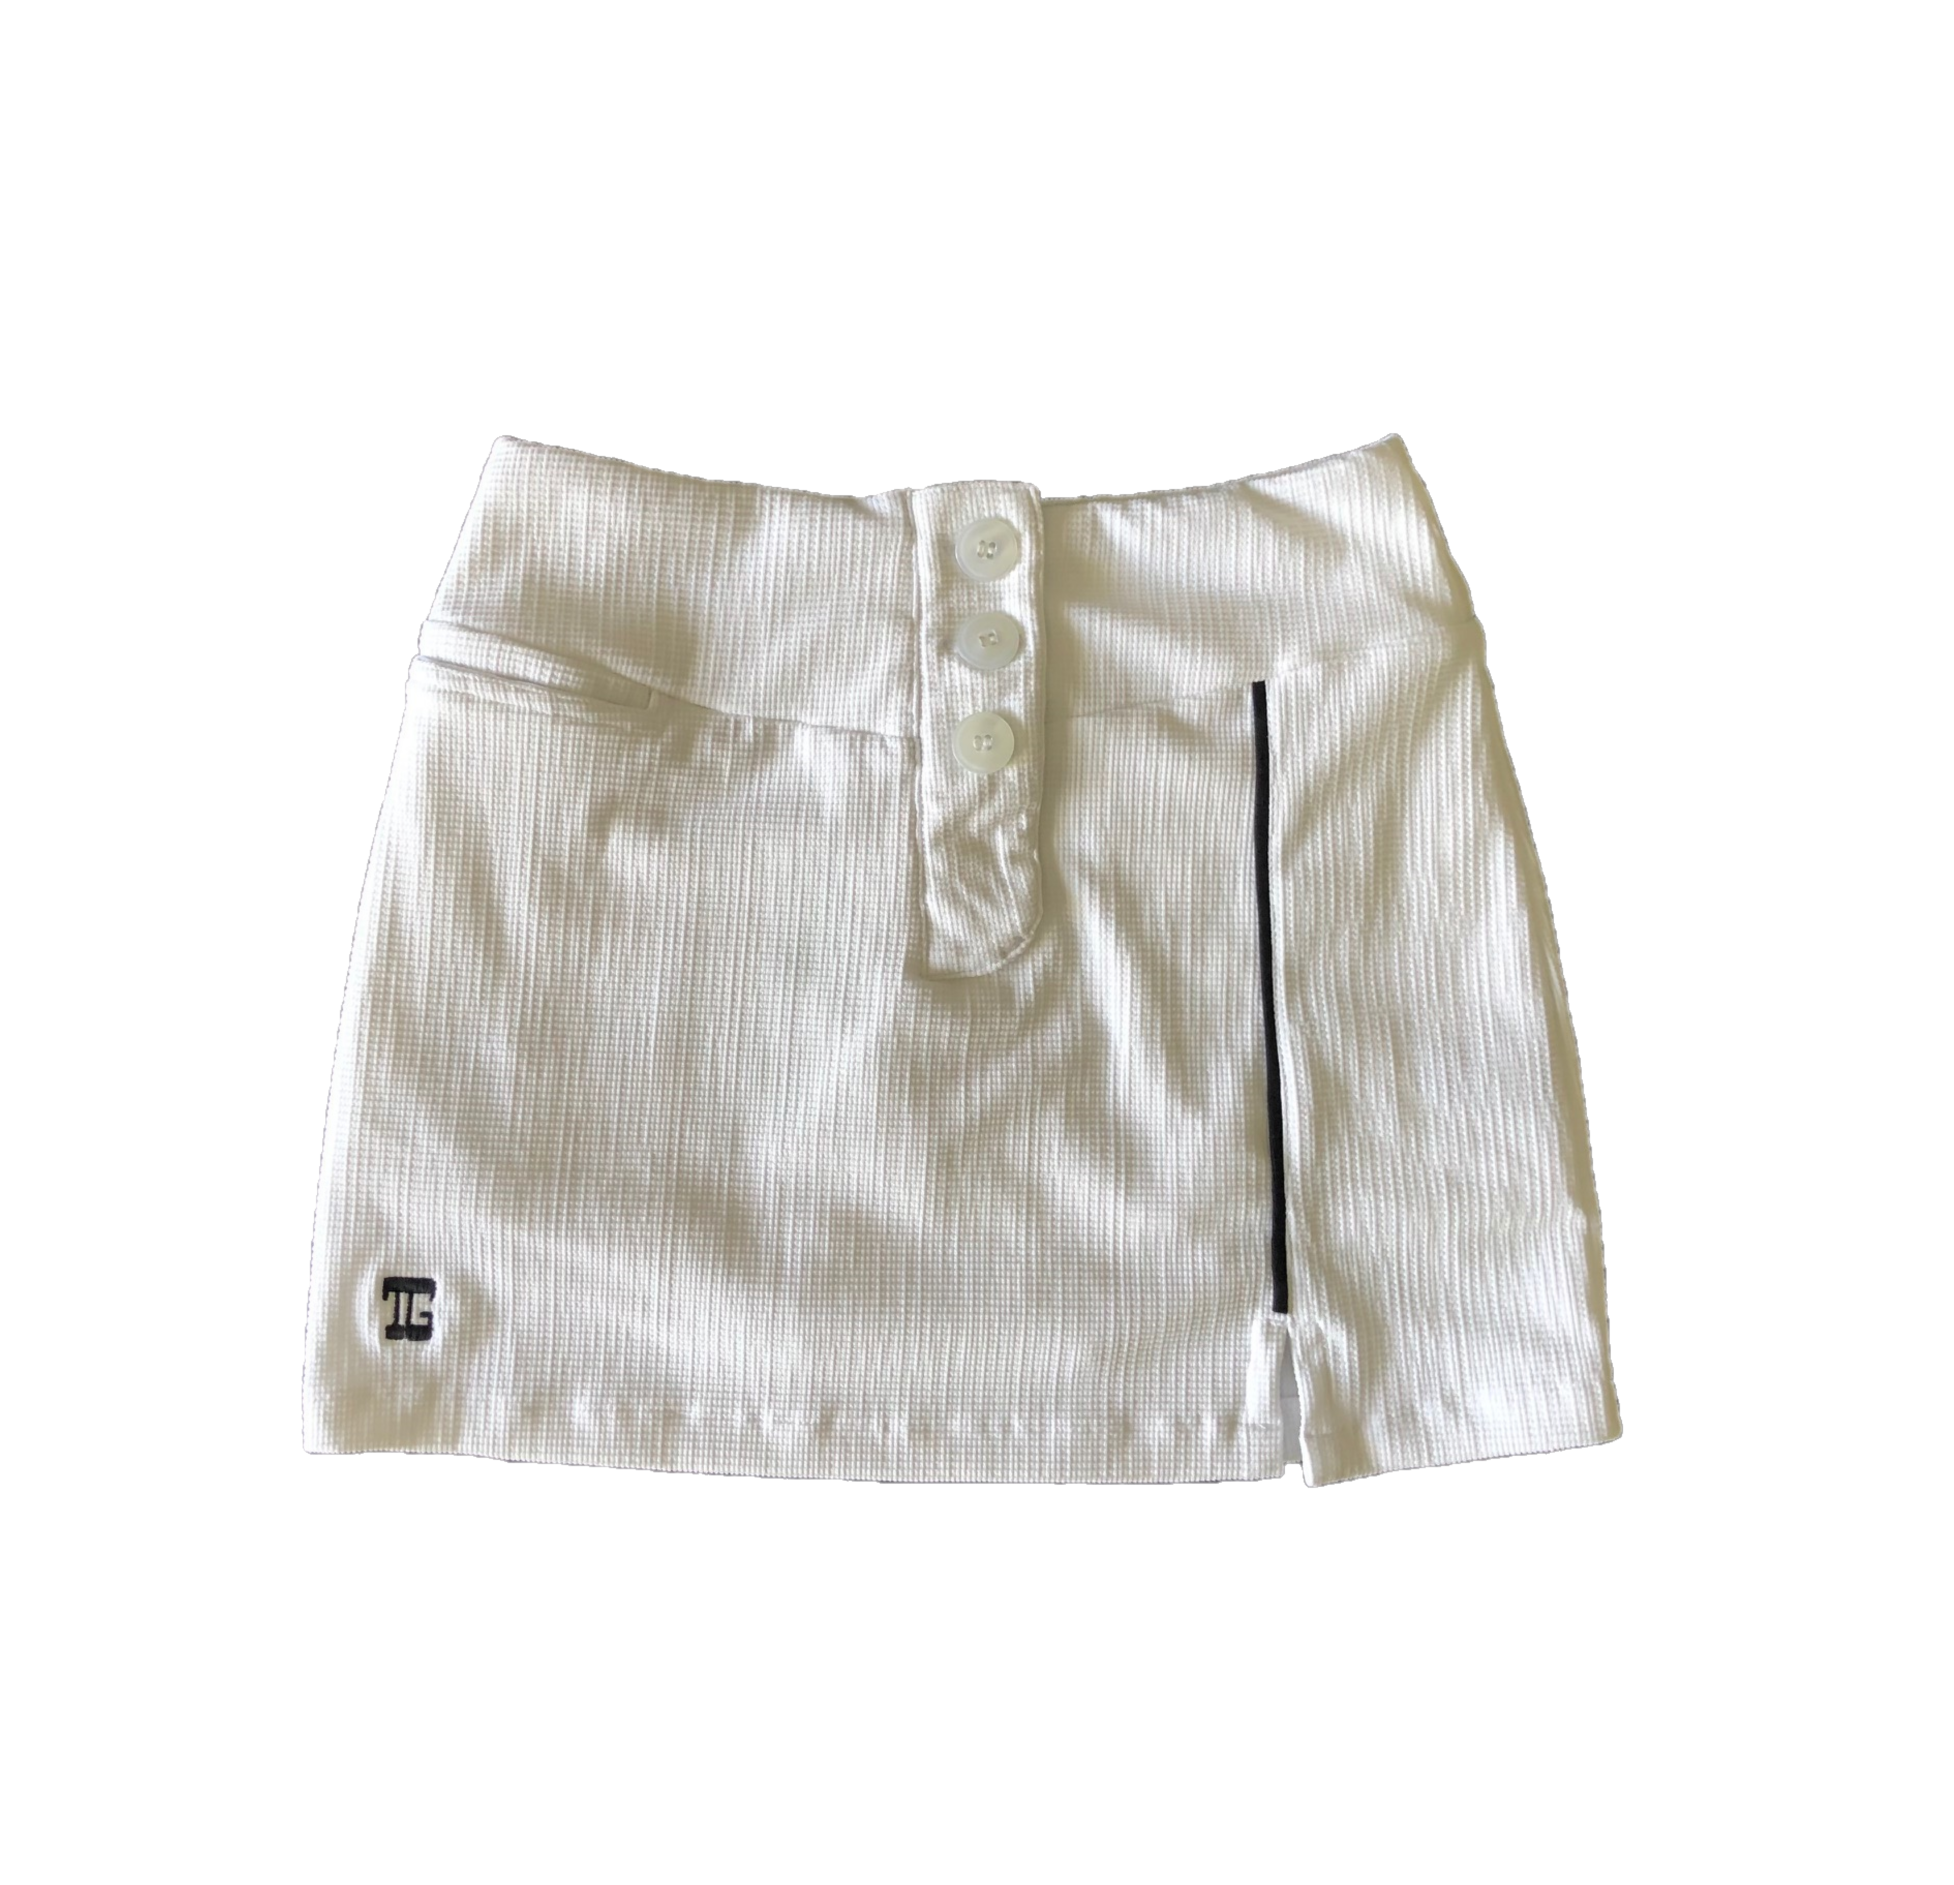 LS-063A    Skirt White Crocodile Texture With 3 Buttons And Black Piping